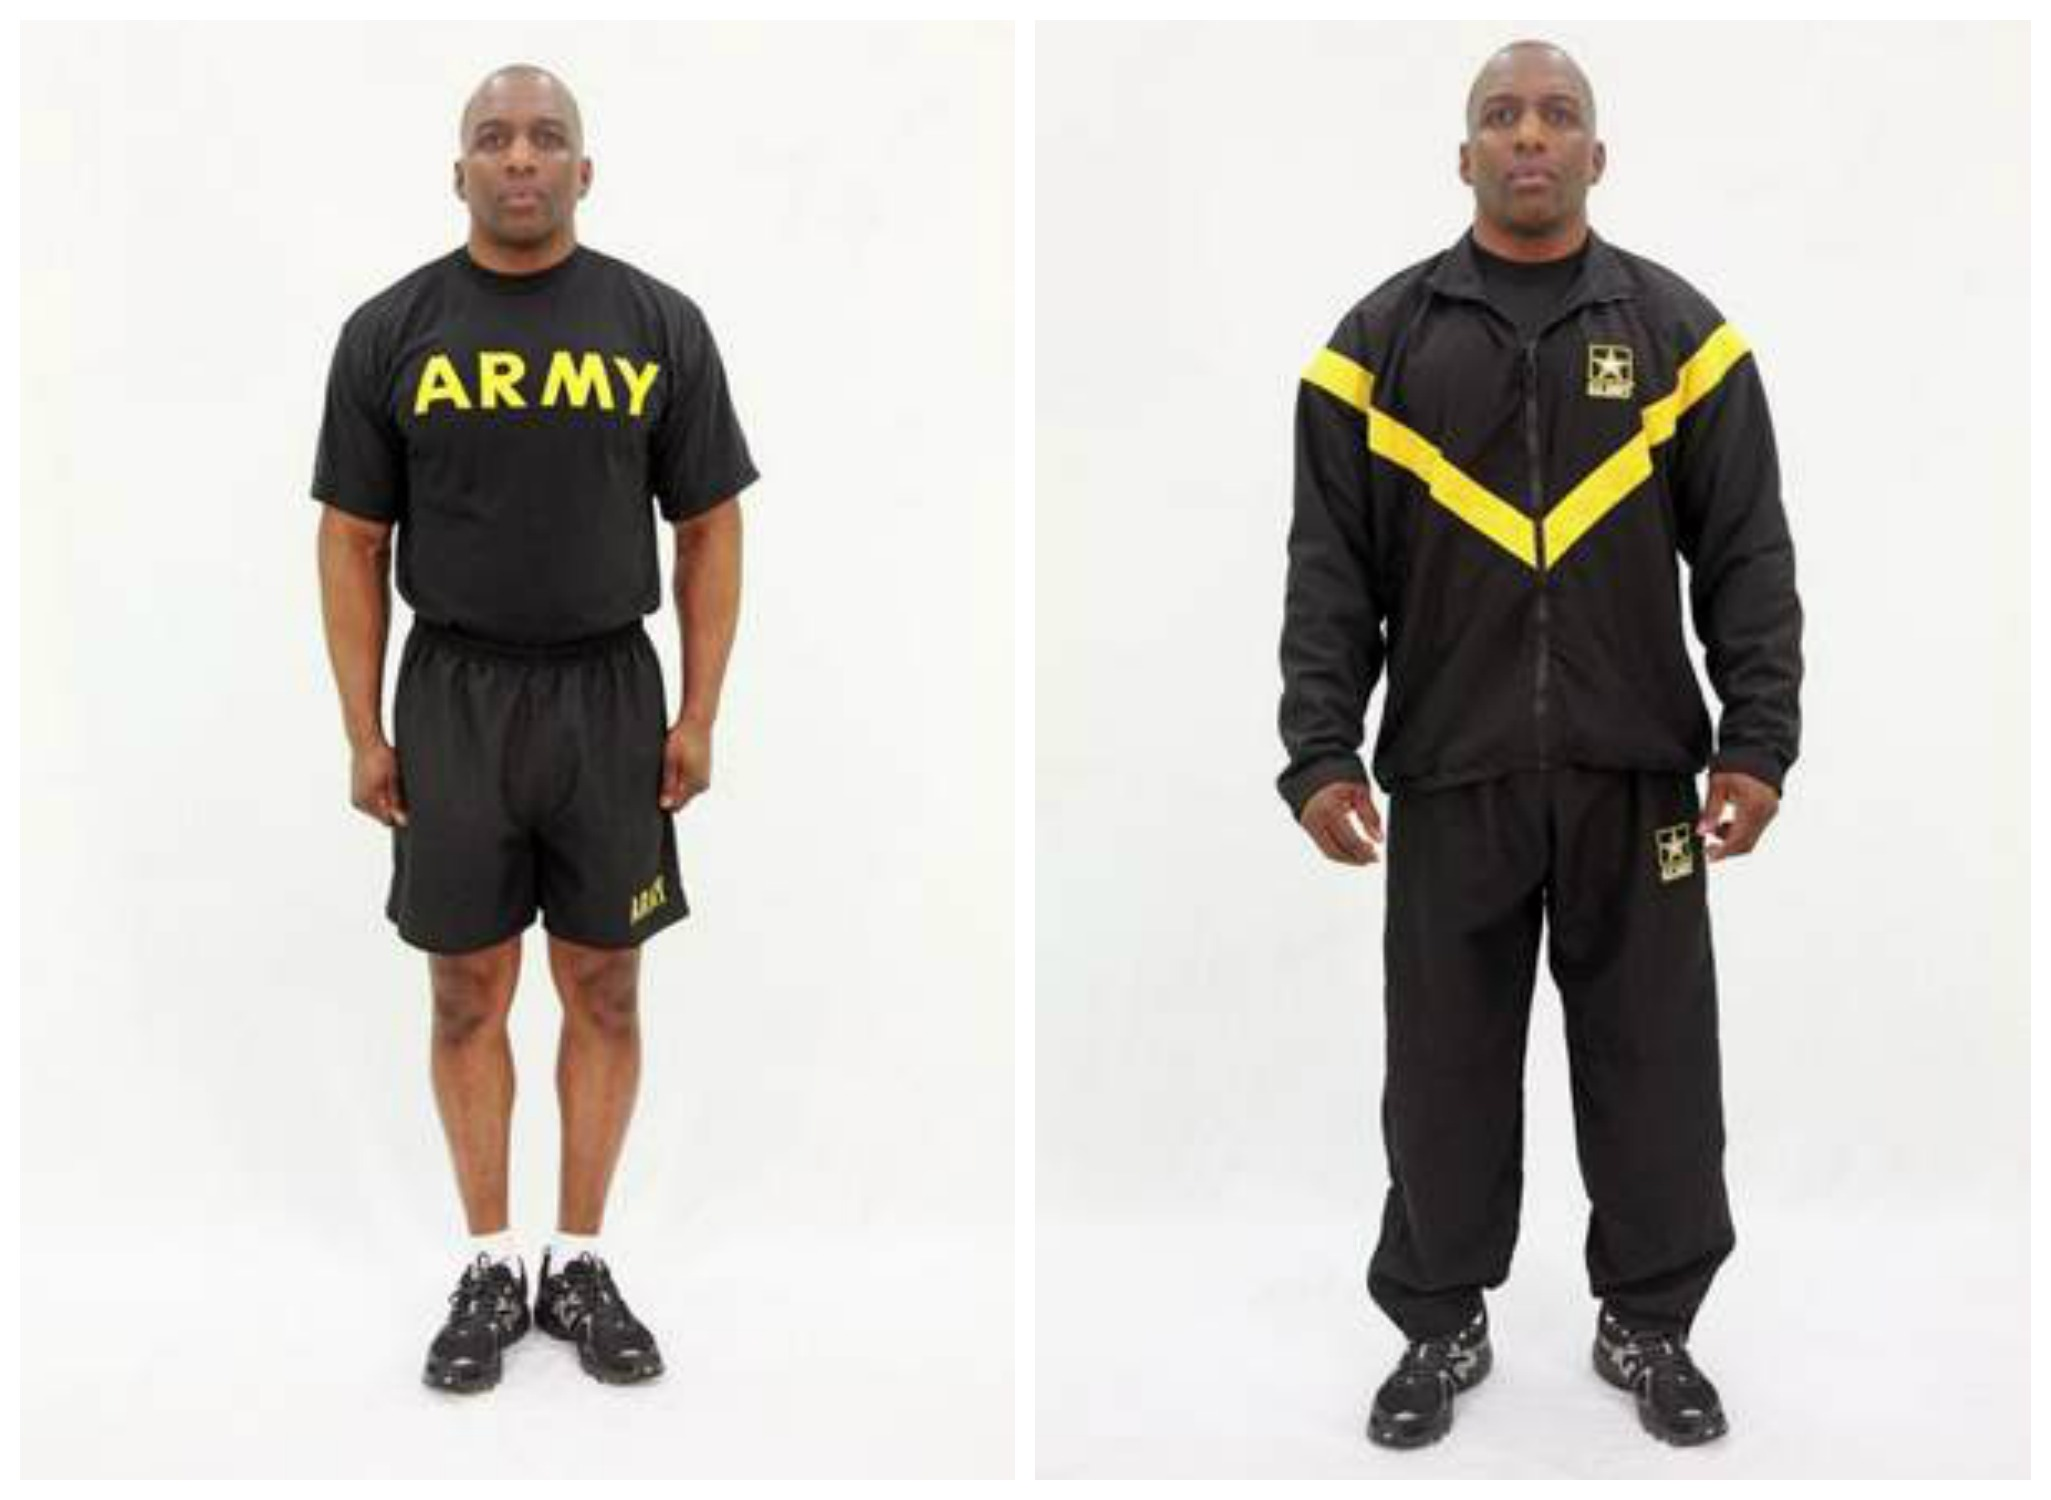 Army Apft Uniform 111